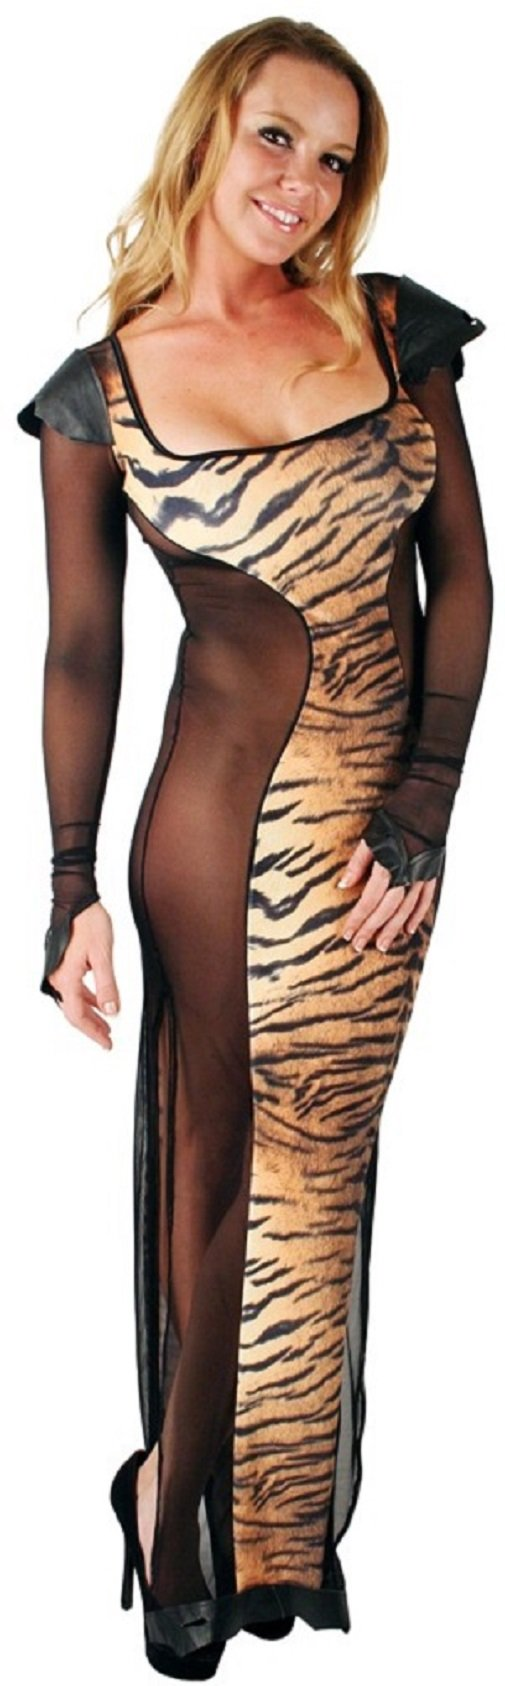 Plus size Velvet hourglass gown long dress, Tiger print, 12x by Delicate Illusions